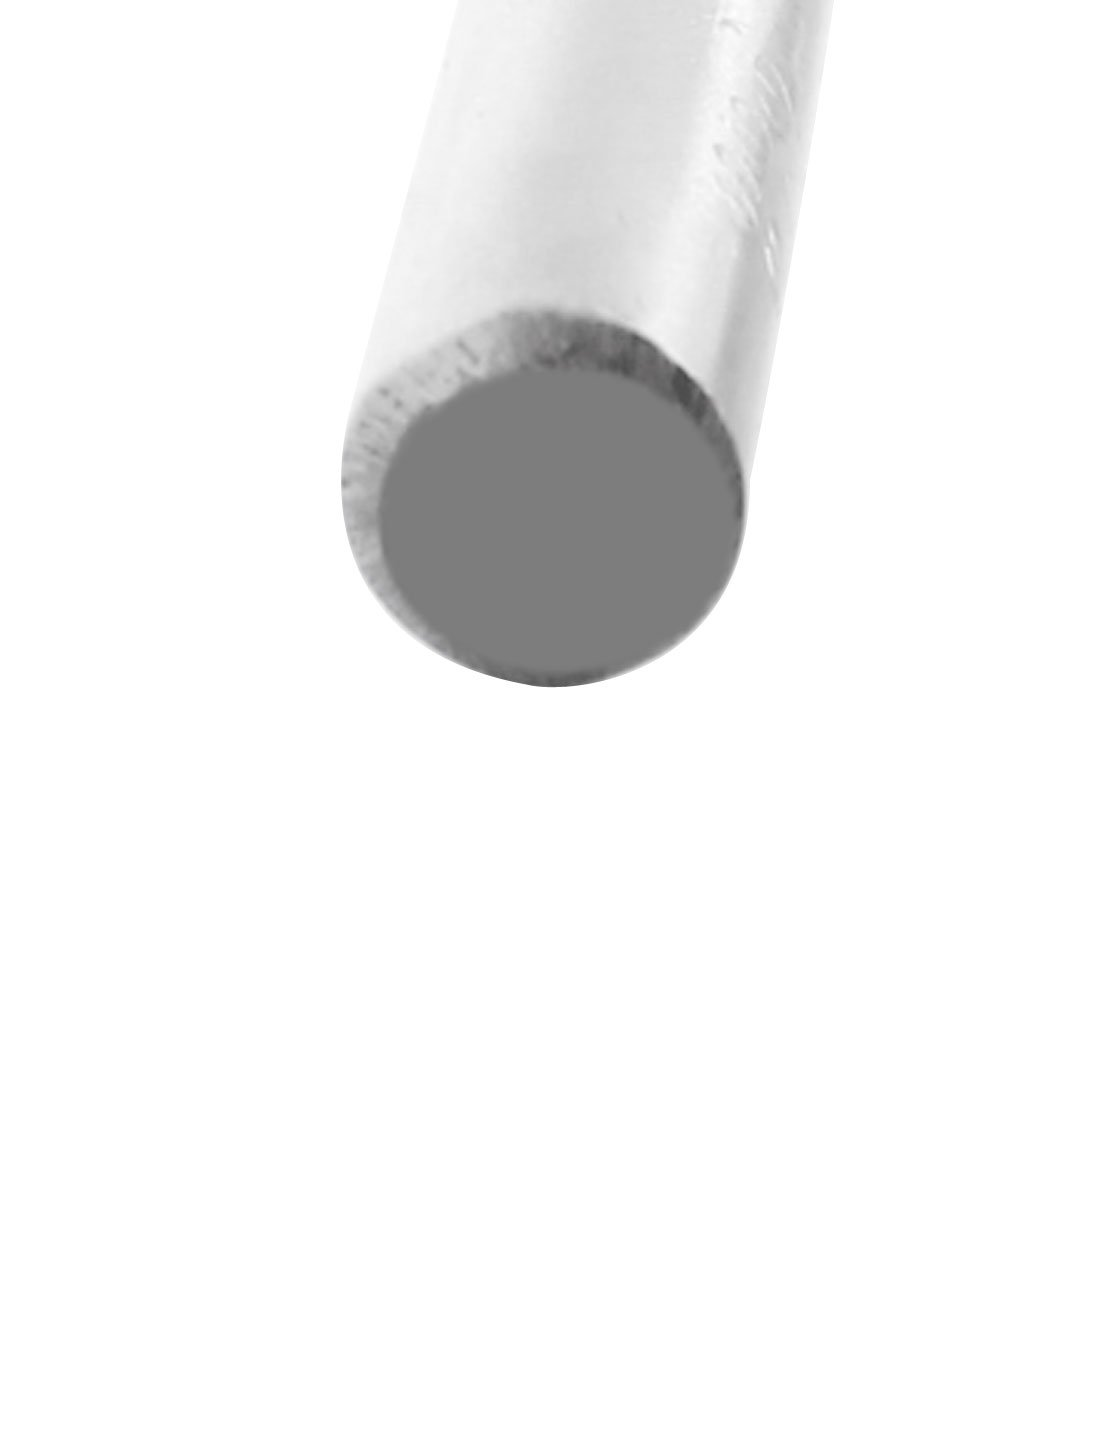 61423011 300w R7s jacketed Infra Red heat lamp